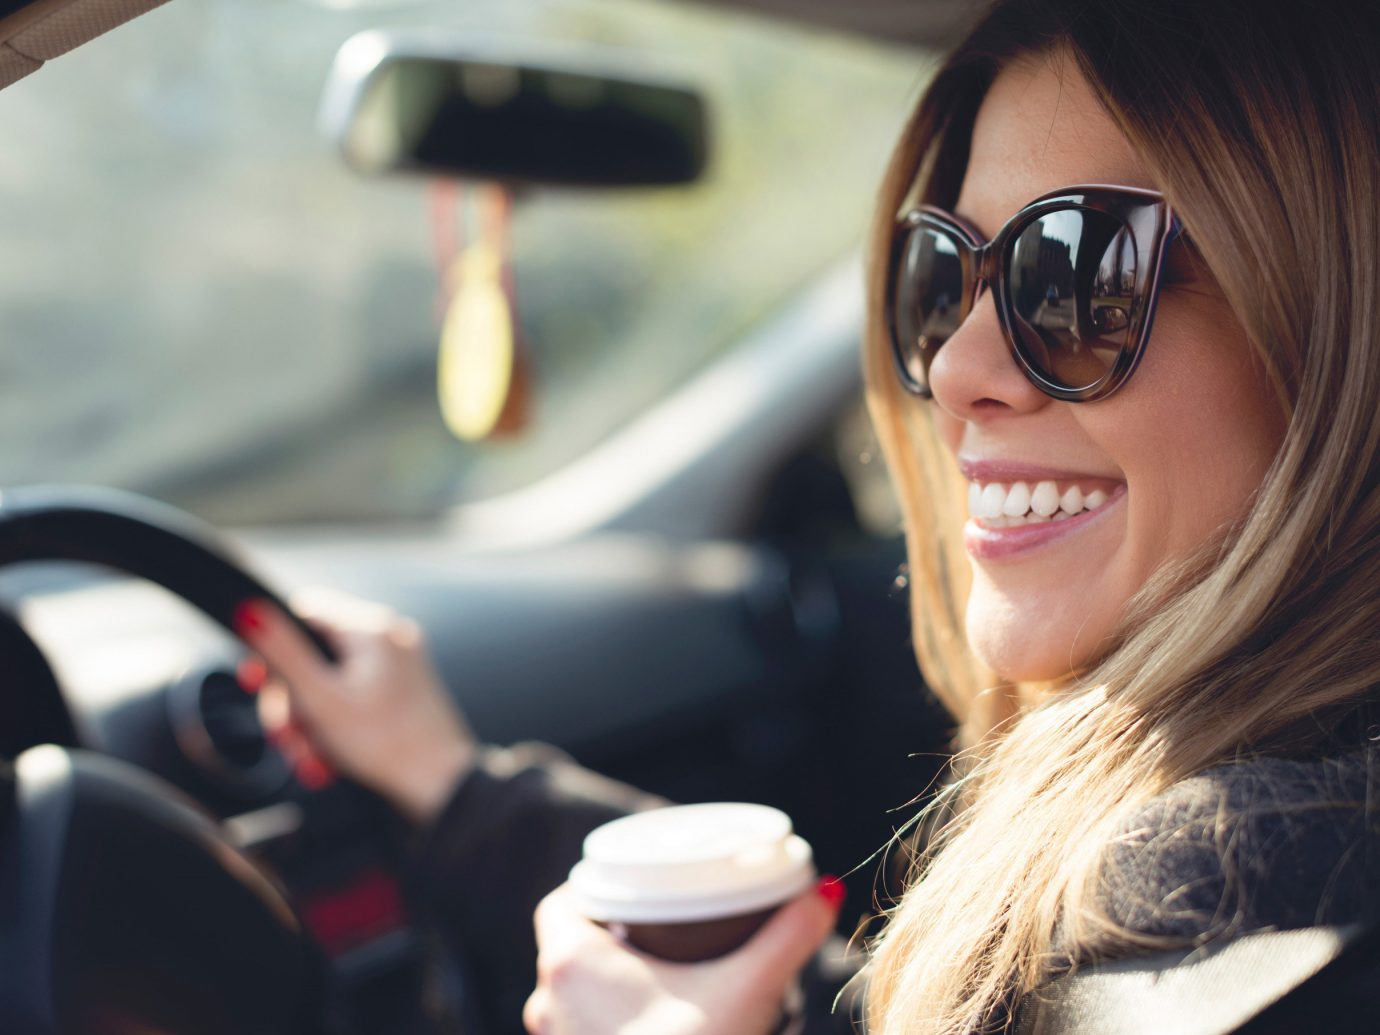 Road Trips Travel Tips person outdoor car woman eyewear glasses vision care sunglasses girl smile driving automobile make model vehicle spectacles lady close goggles